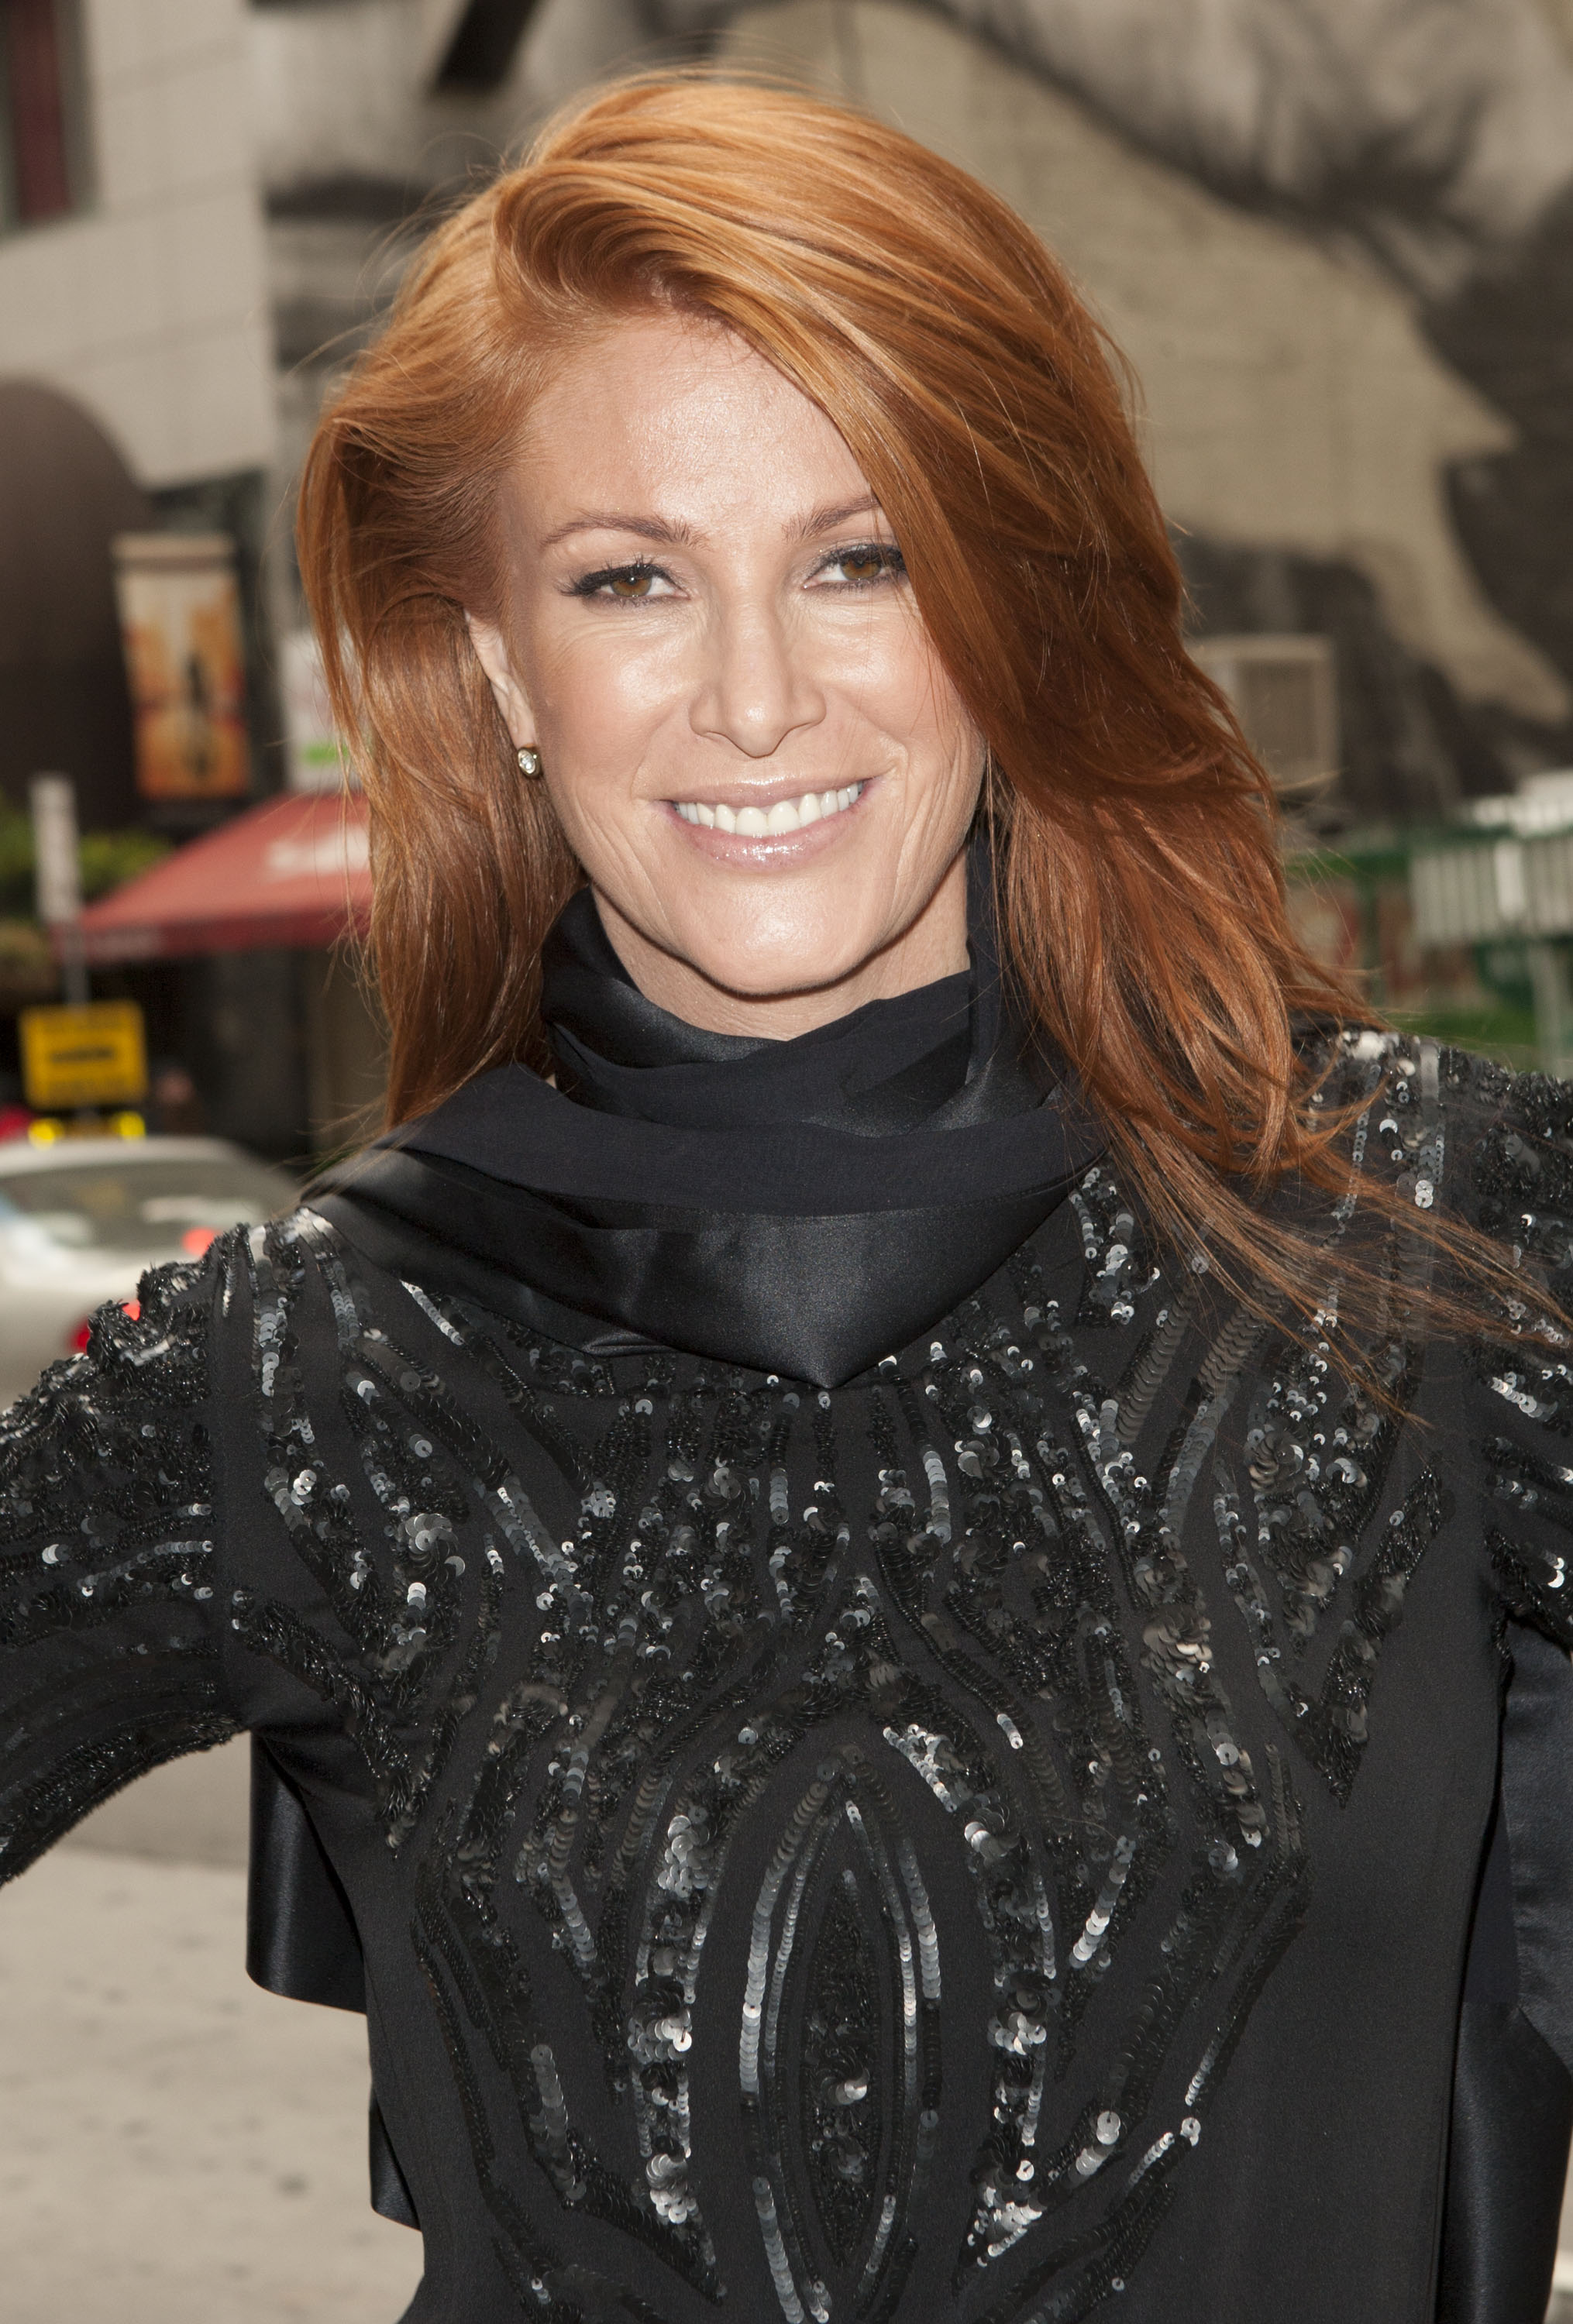 Angie Survivor cancer survivor angie everhart on home life with her fiancé